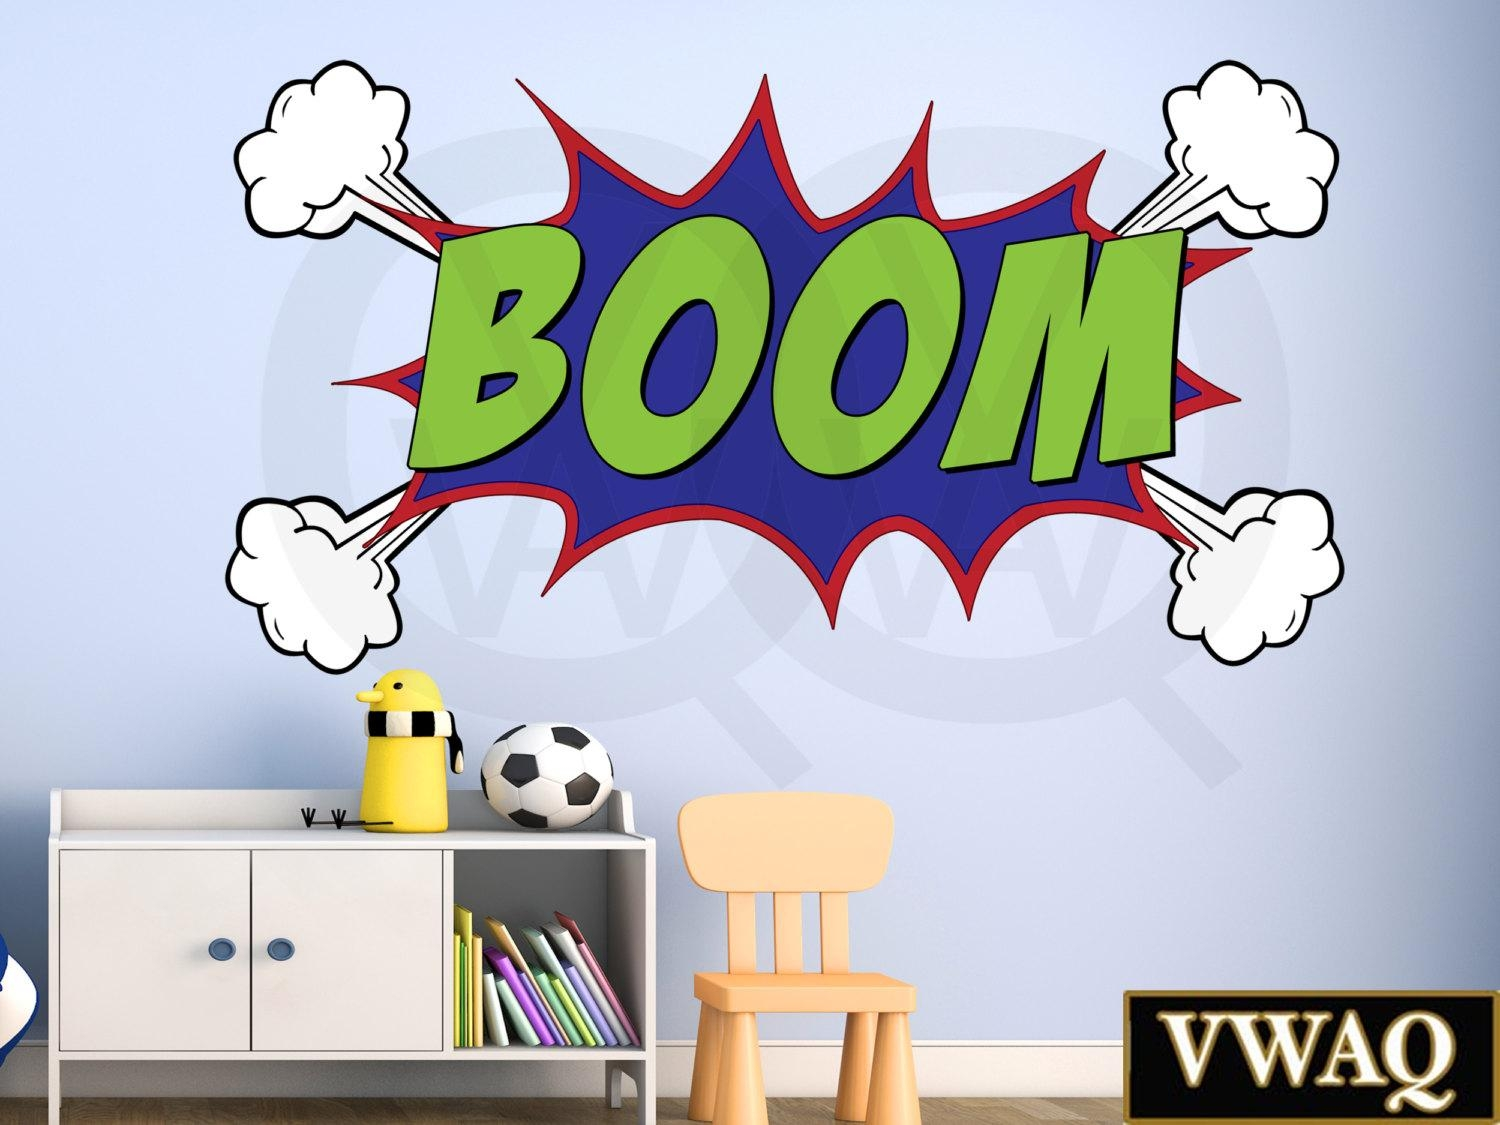 Comic Book Boom Wall Decal Boom Sound Effect Wall Art Superhero Regarding Superhero Wall Art Stickers (Image 6 of 20)